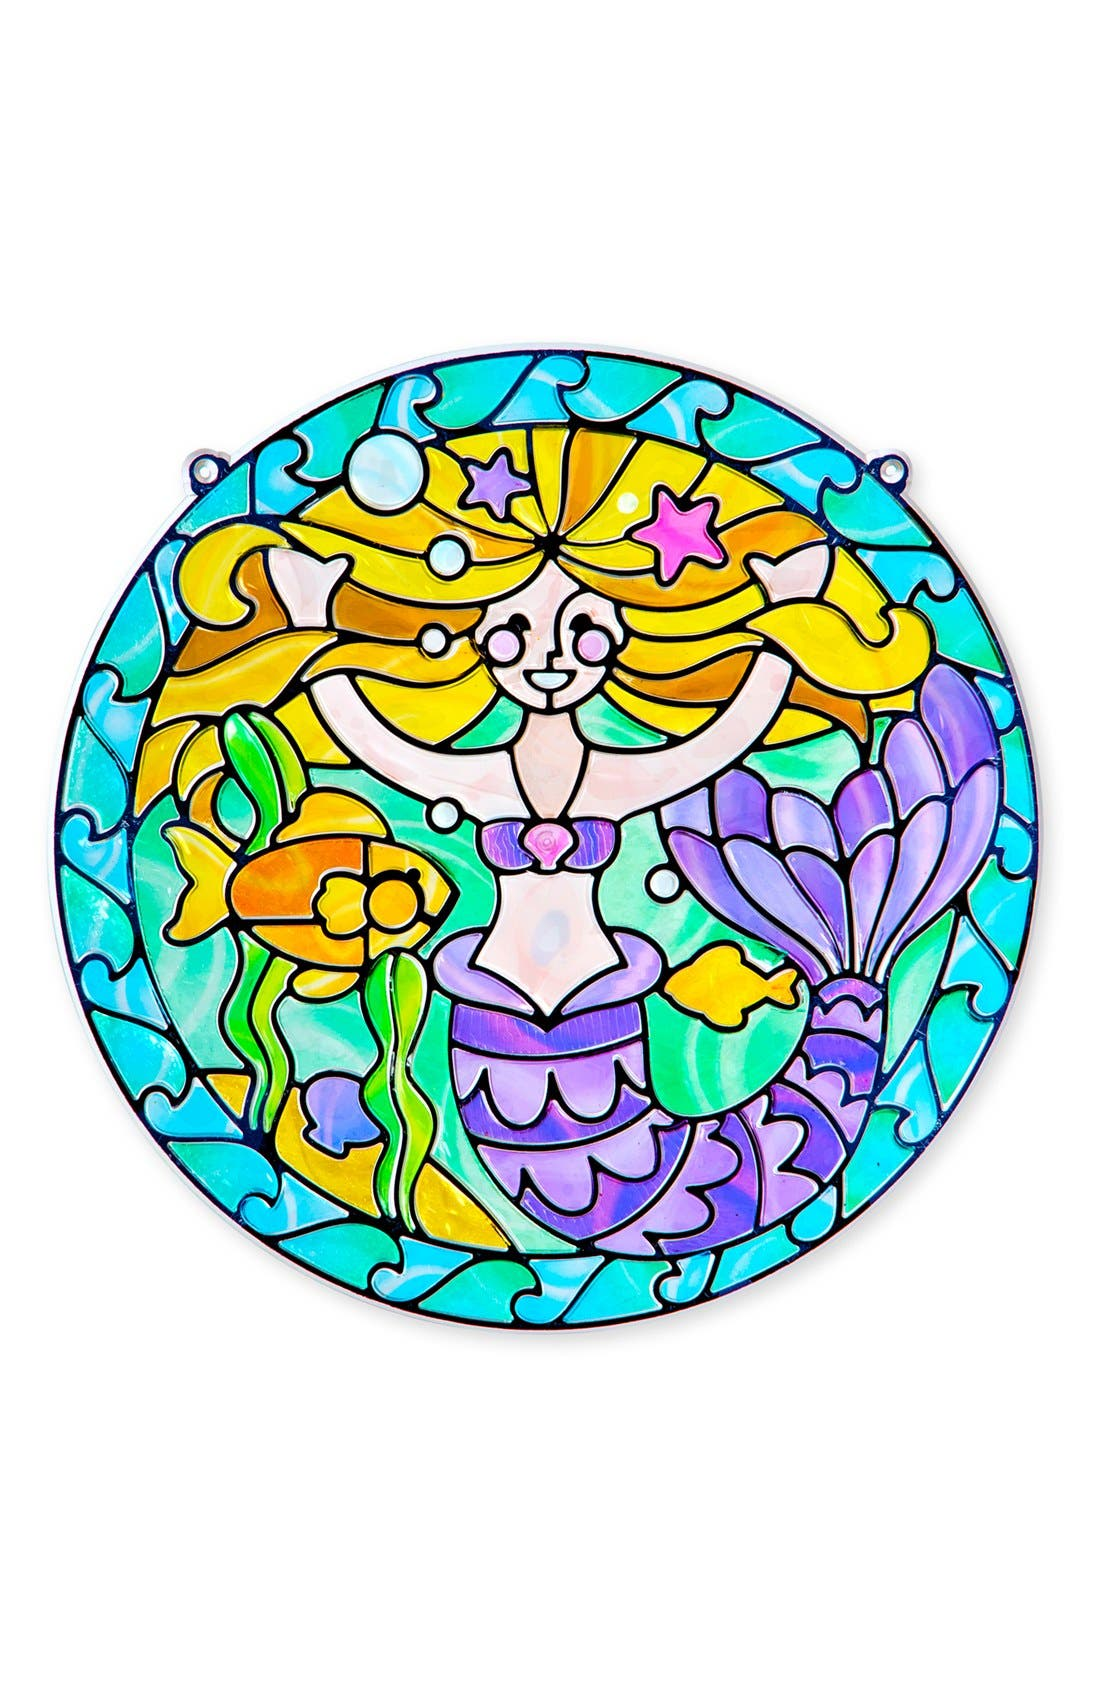 Melissa & Doug 'Stained Glass Made Easy - Mermaid' Peel & Press Sticker Kit